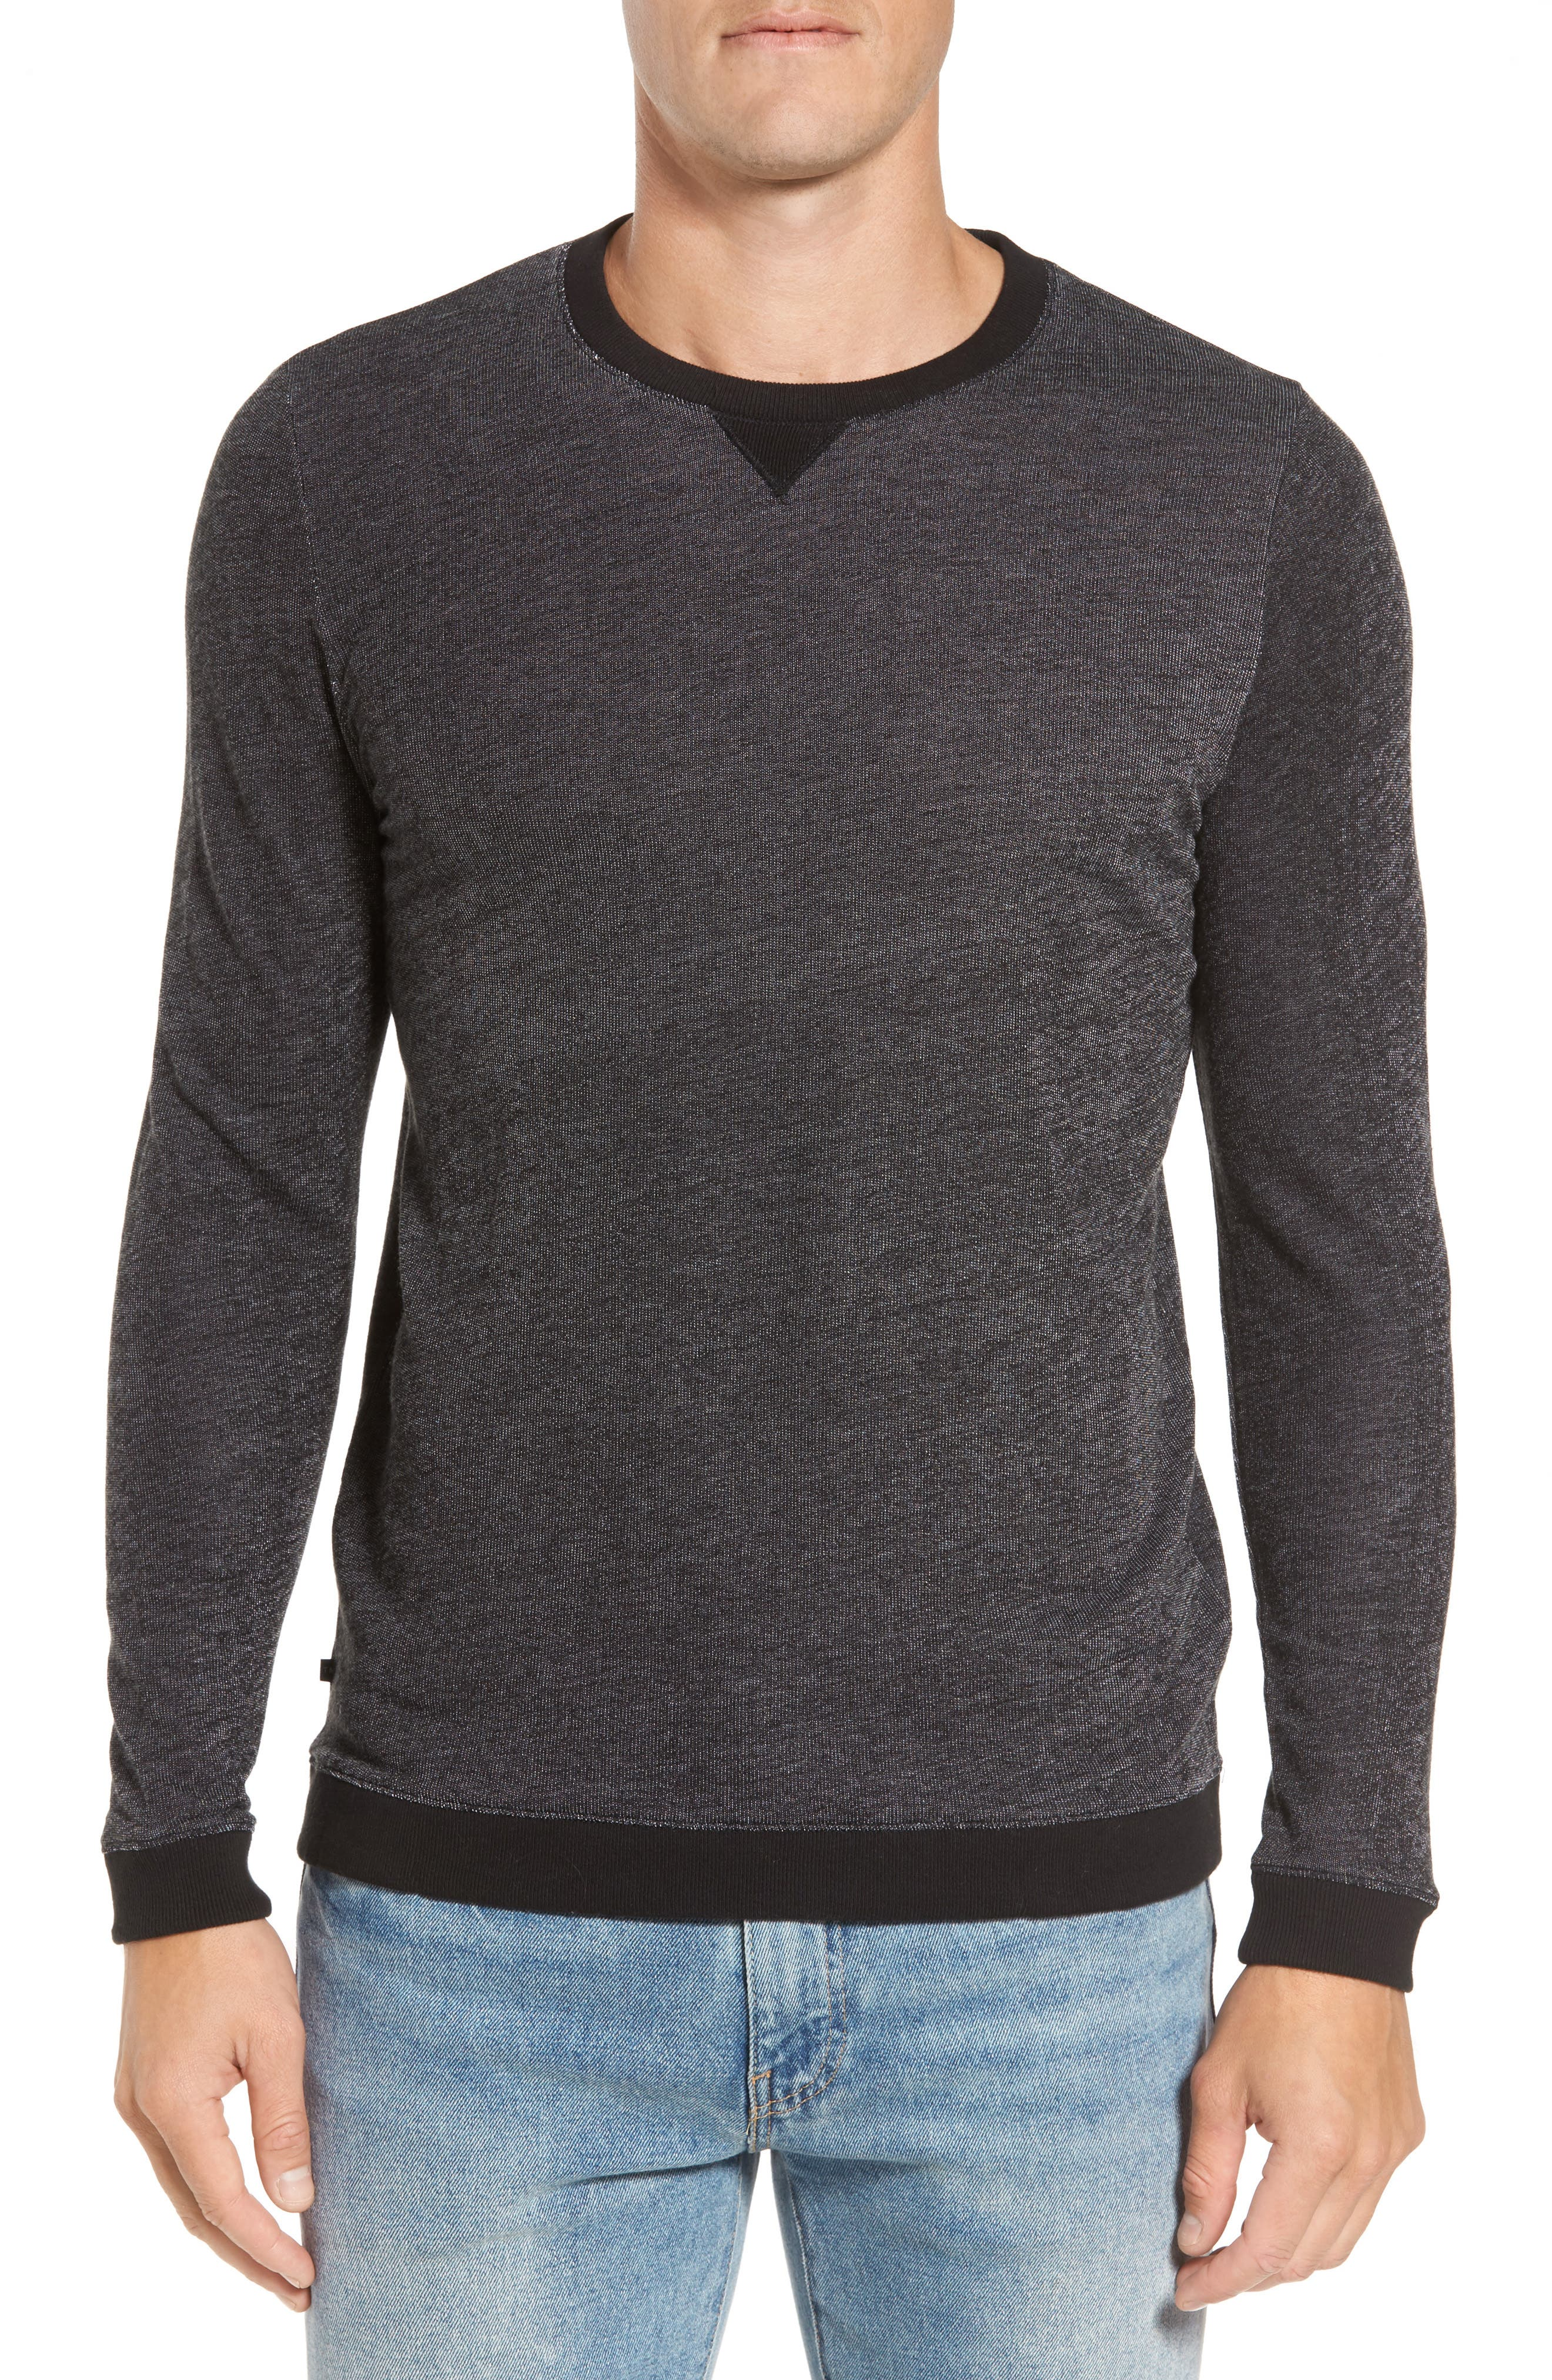 Steffes Pullover,                         Main,                         color, Heather Black